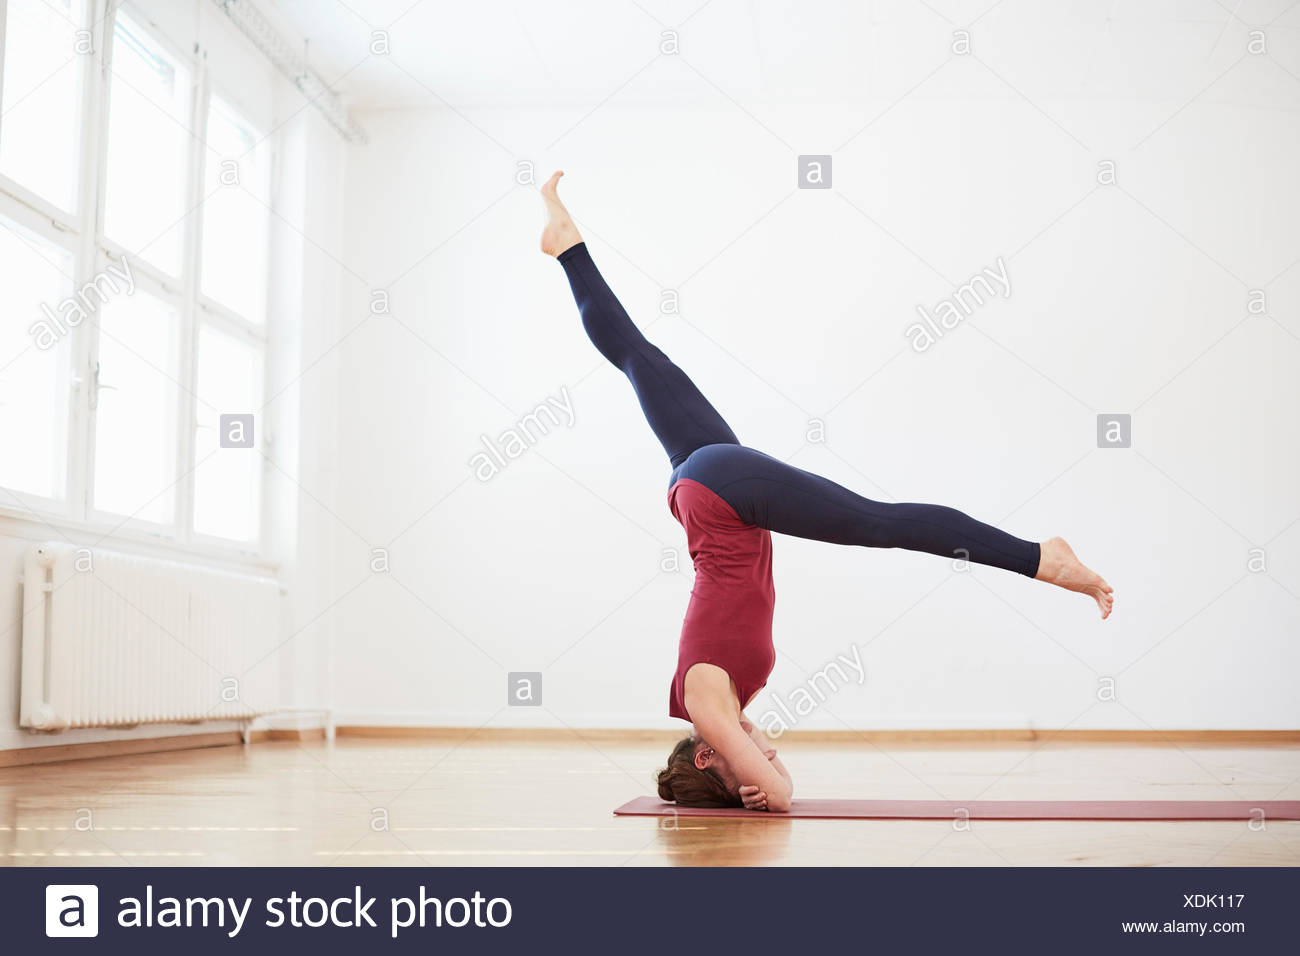 Woman in exercise studio legs apart doing headstand - Stock Image